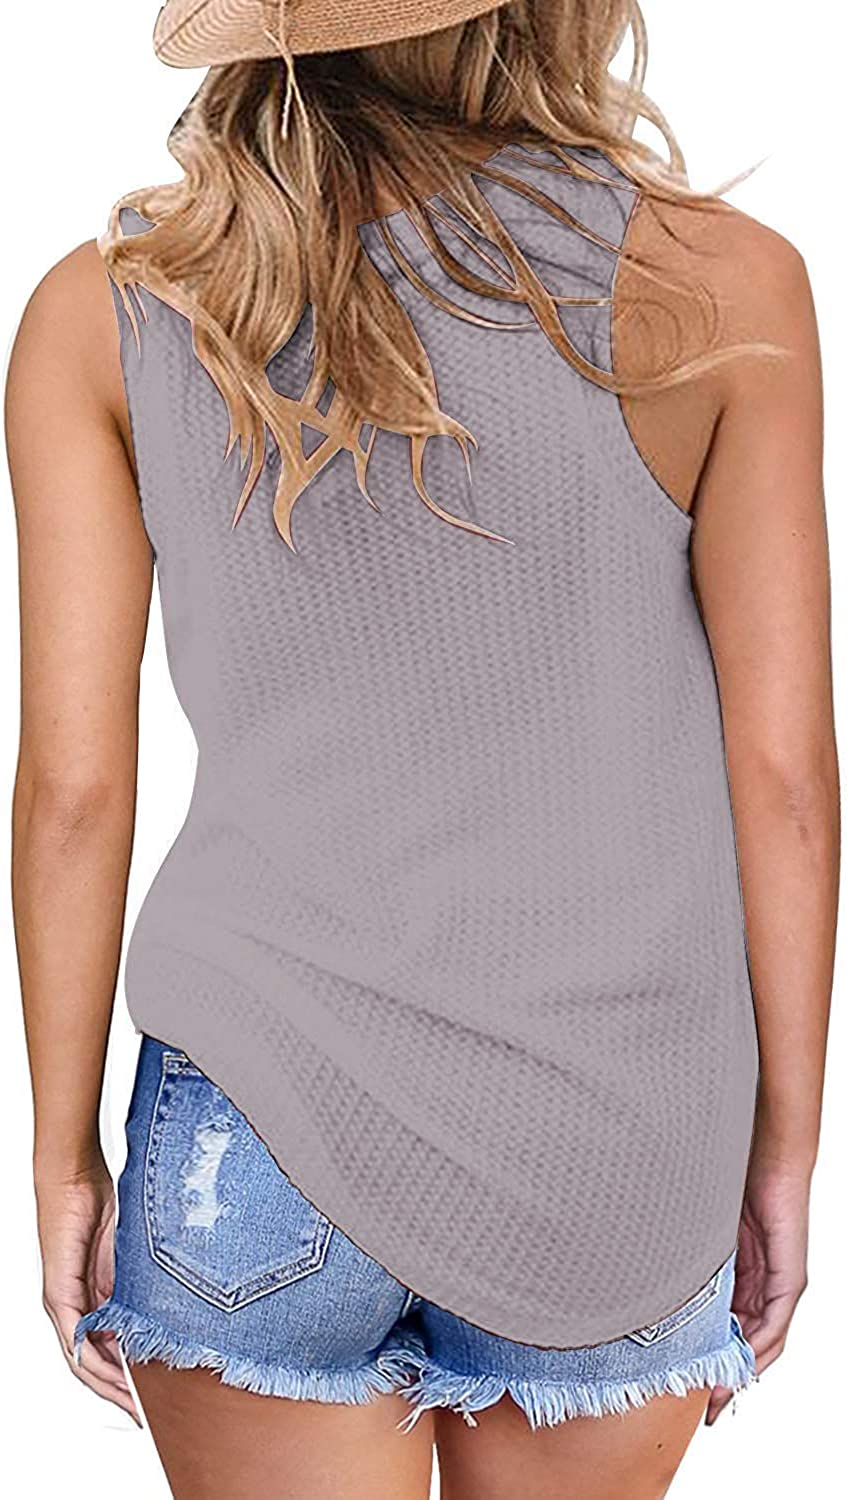 Owin Womens Casual Waffle Knit Tank Tops Sleeveless Shirts for Women Summer tops